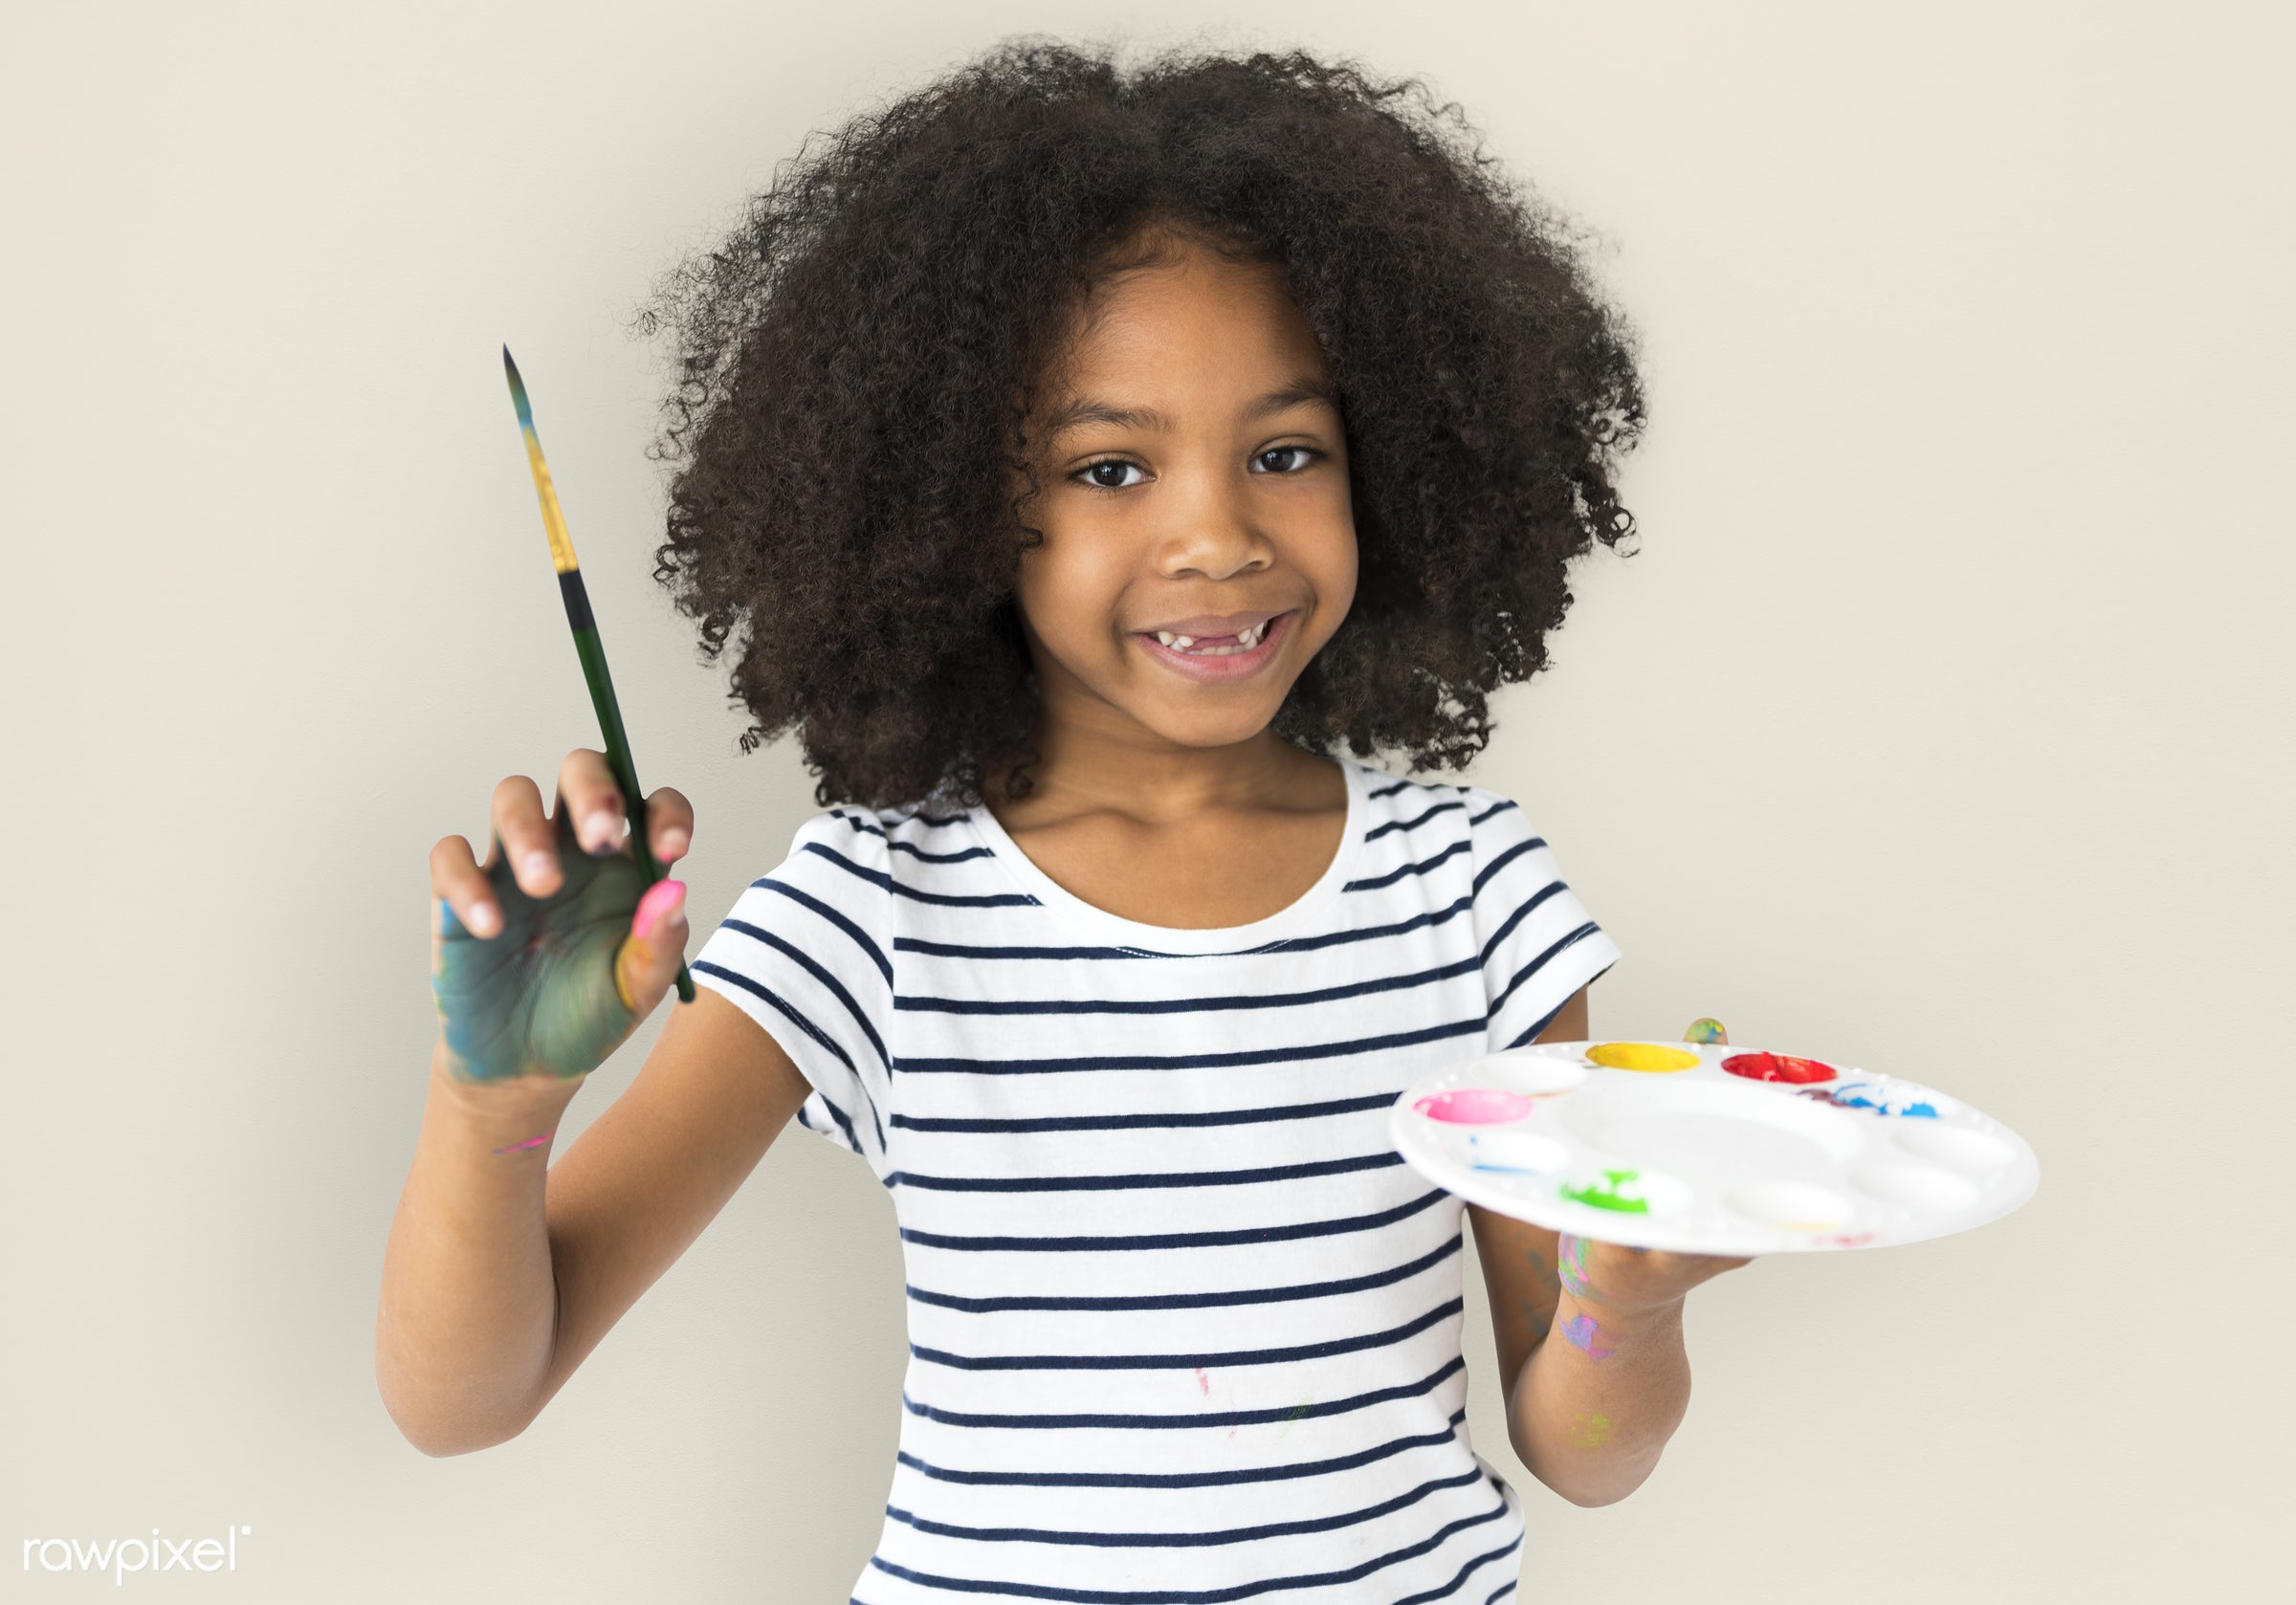 studio, expression, person, little, people, solo, childhood, smile, alone, isolated, little girl, colors, hold, art, paint,...